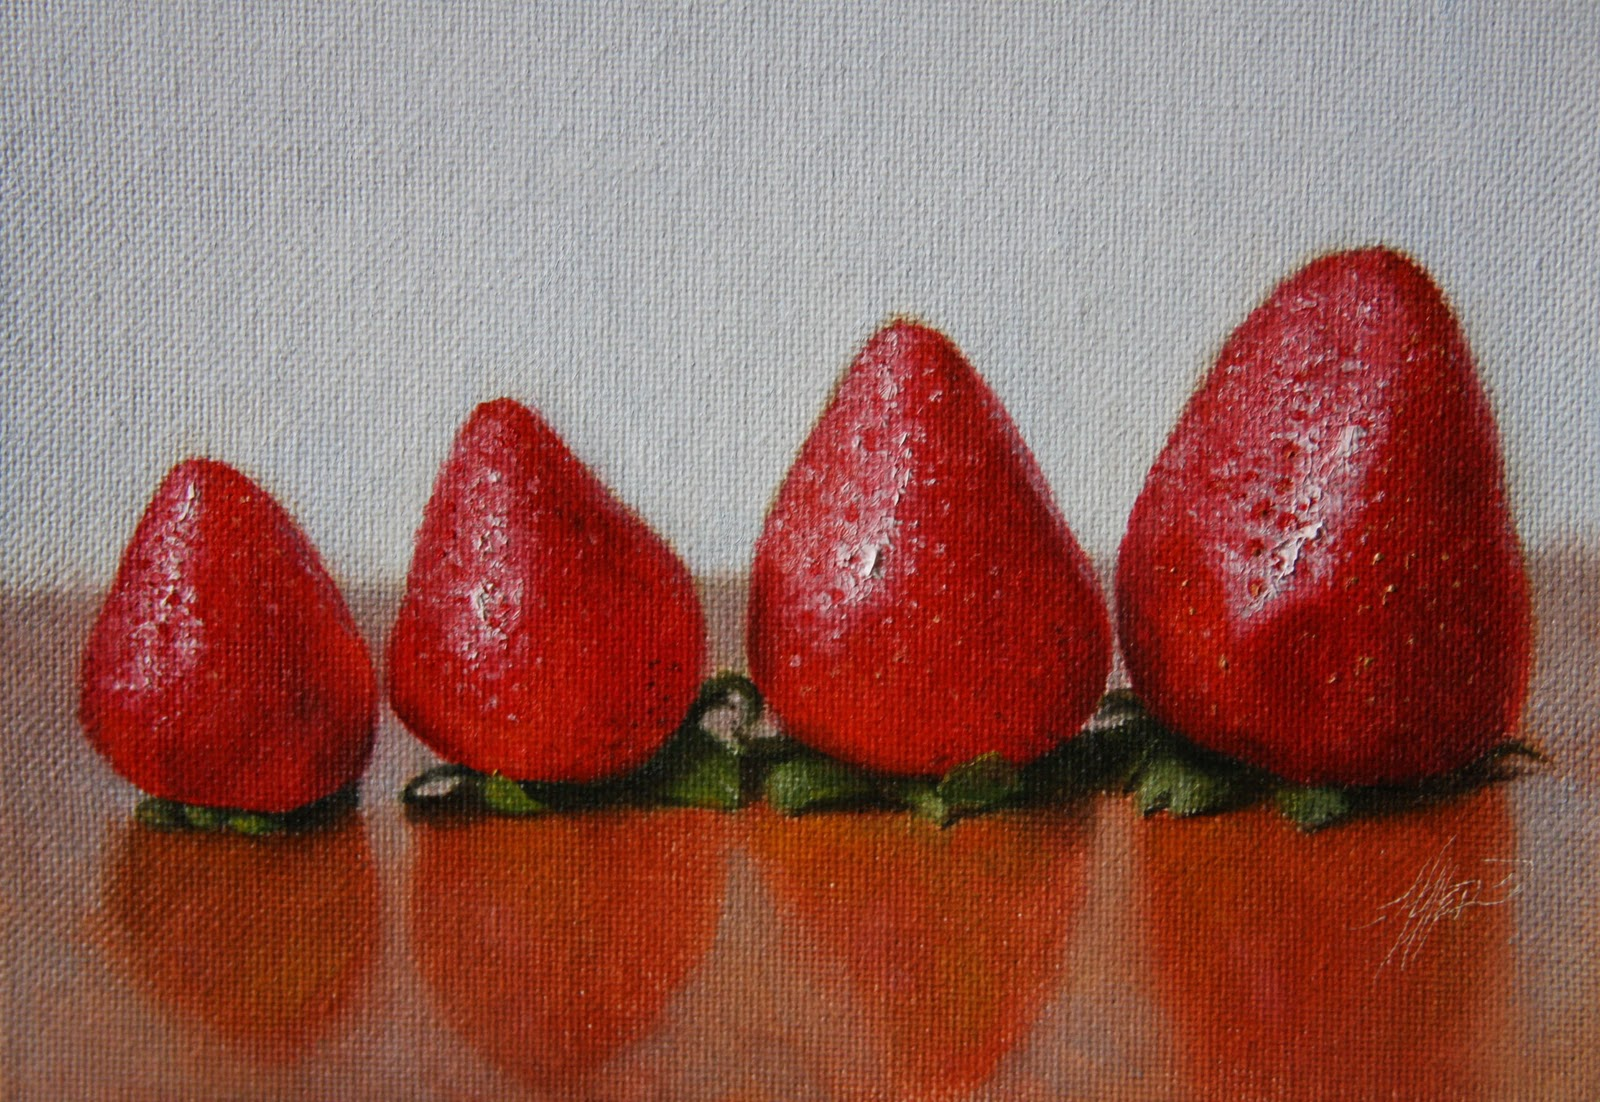 """Strawberries Aligned"" original fine art by Jonathan Aller"